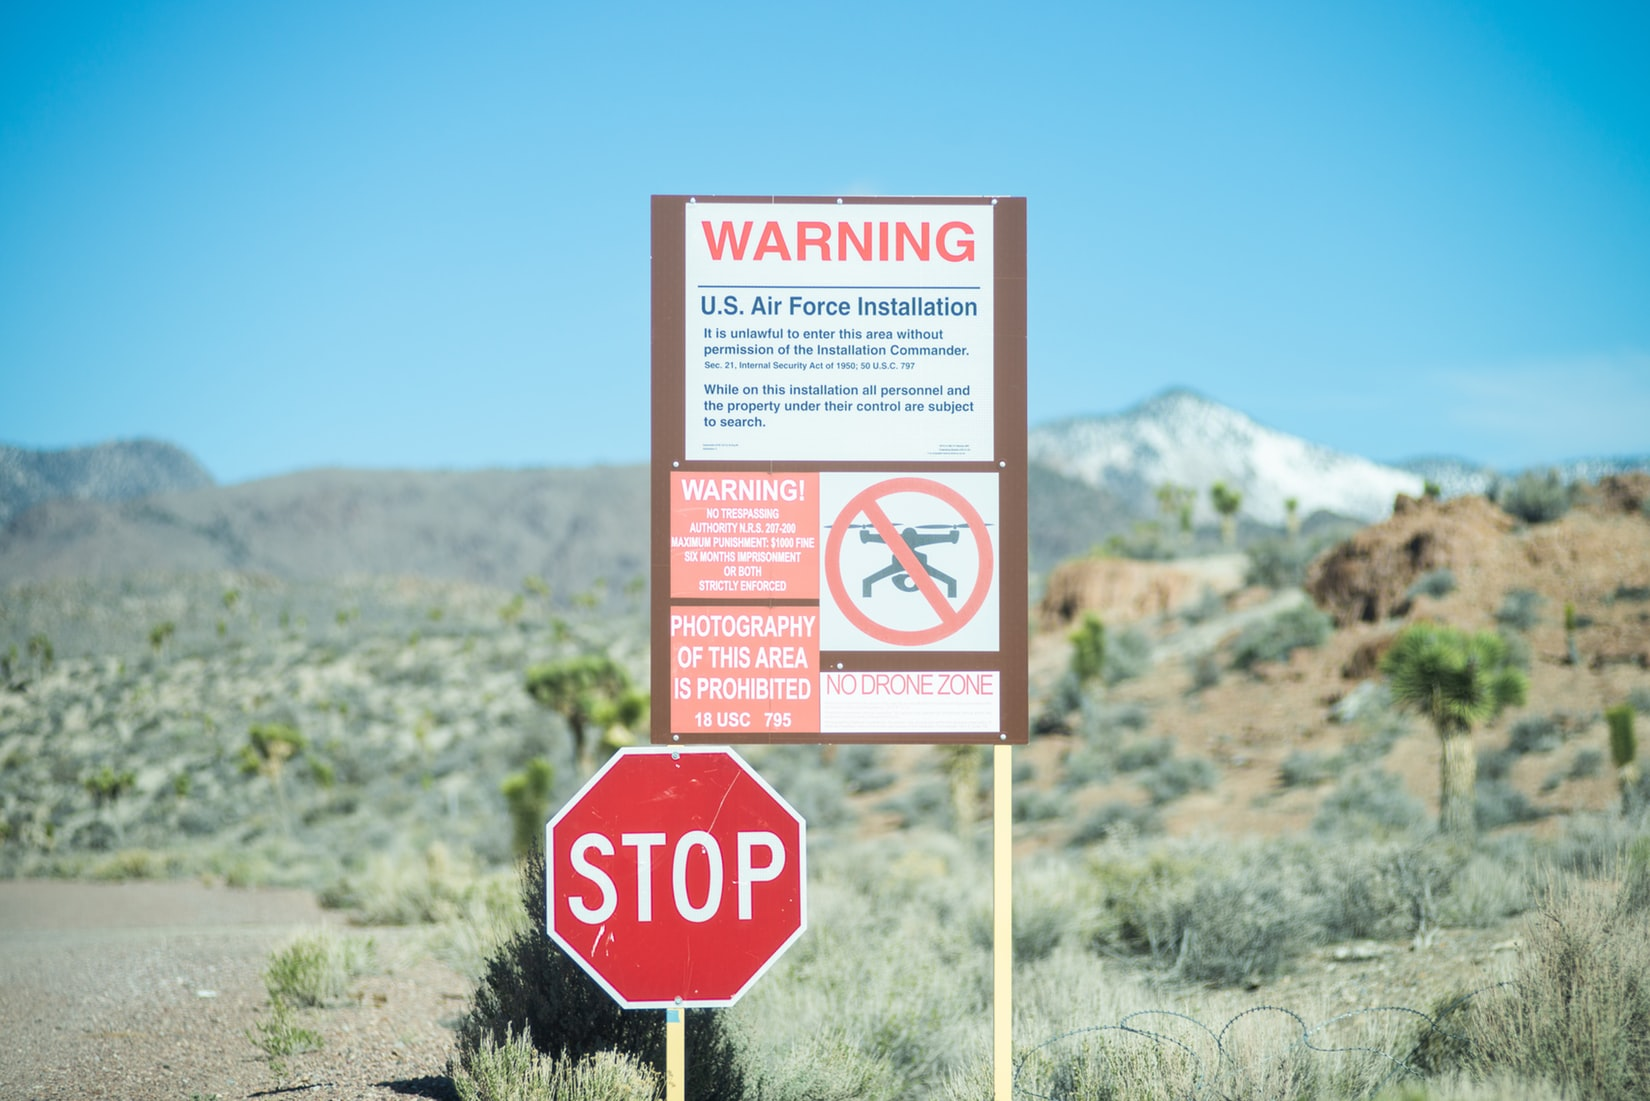 Stop sign and warning sign at the border of Area 51